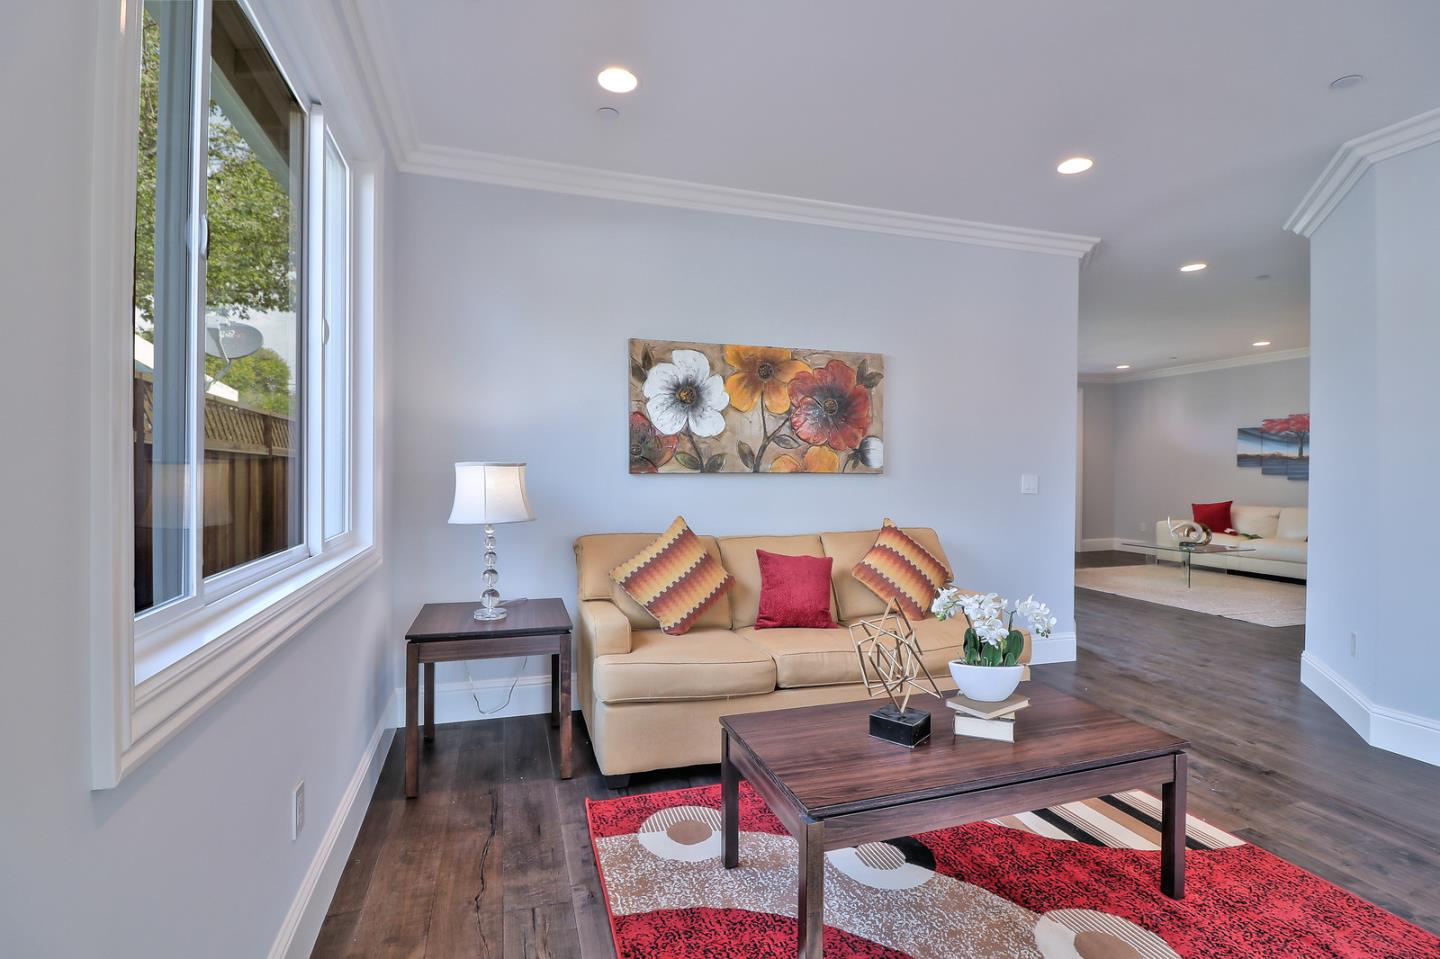 Additional photo for property listing at 2344 Cabrillo Avenue  Santa Clara, カリフォルニア 95050 アメリカ合衆国